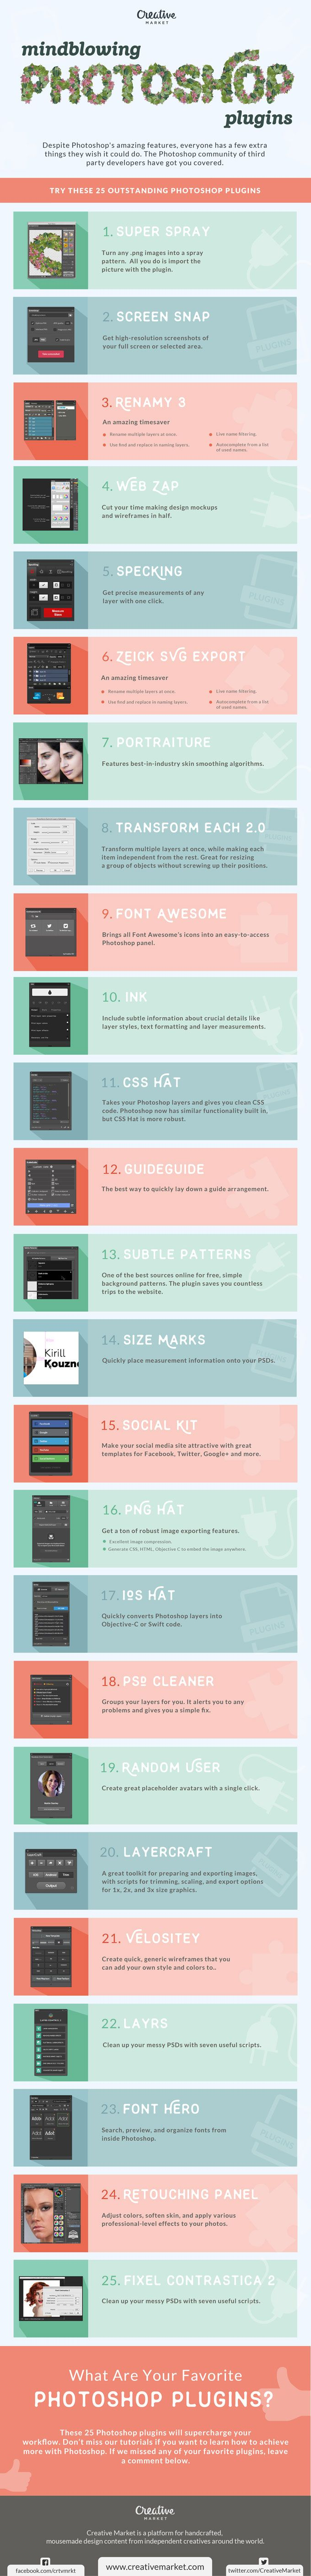 Photoshop has a rich community of third party developers who are regularly churning out fantastic plugins and extensions to add all kinds of functionality. From faster image exporting to better guide control, here are 25 outstanding Photoshop plugins you should try.